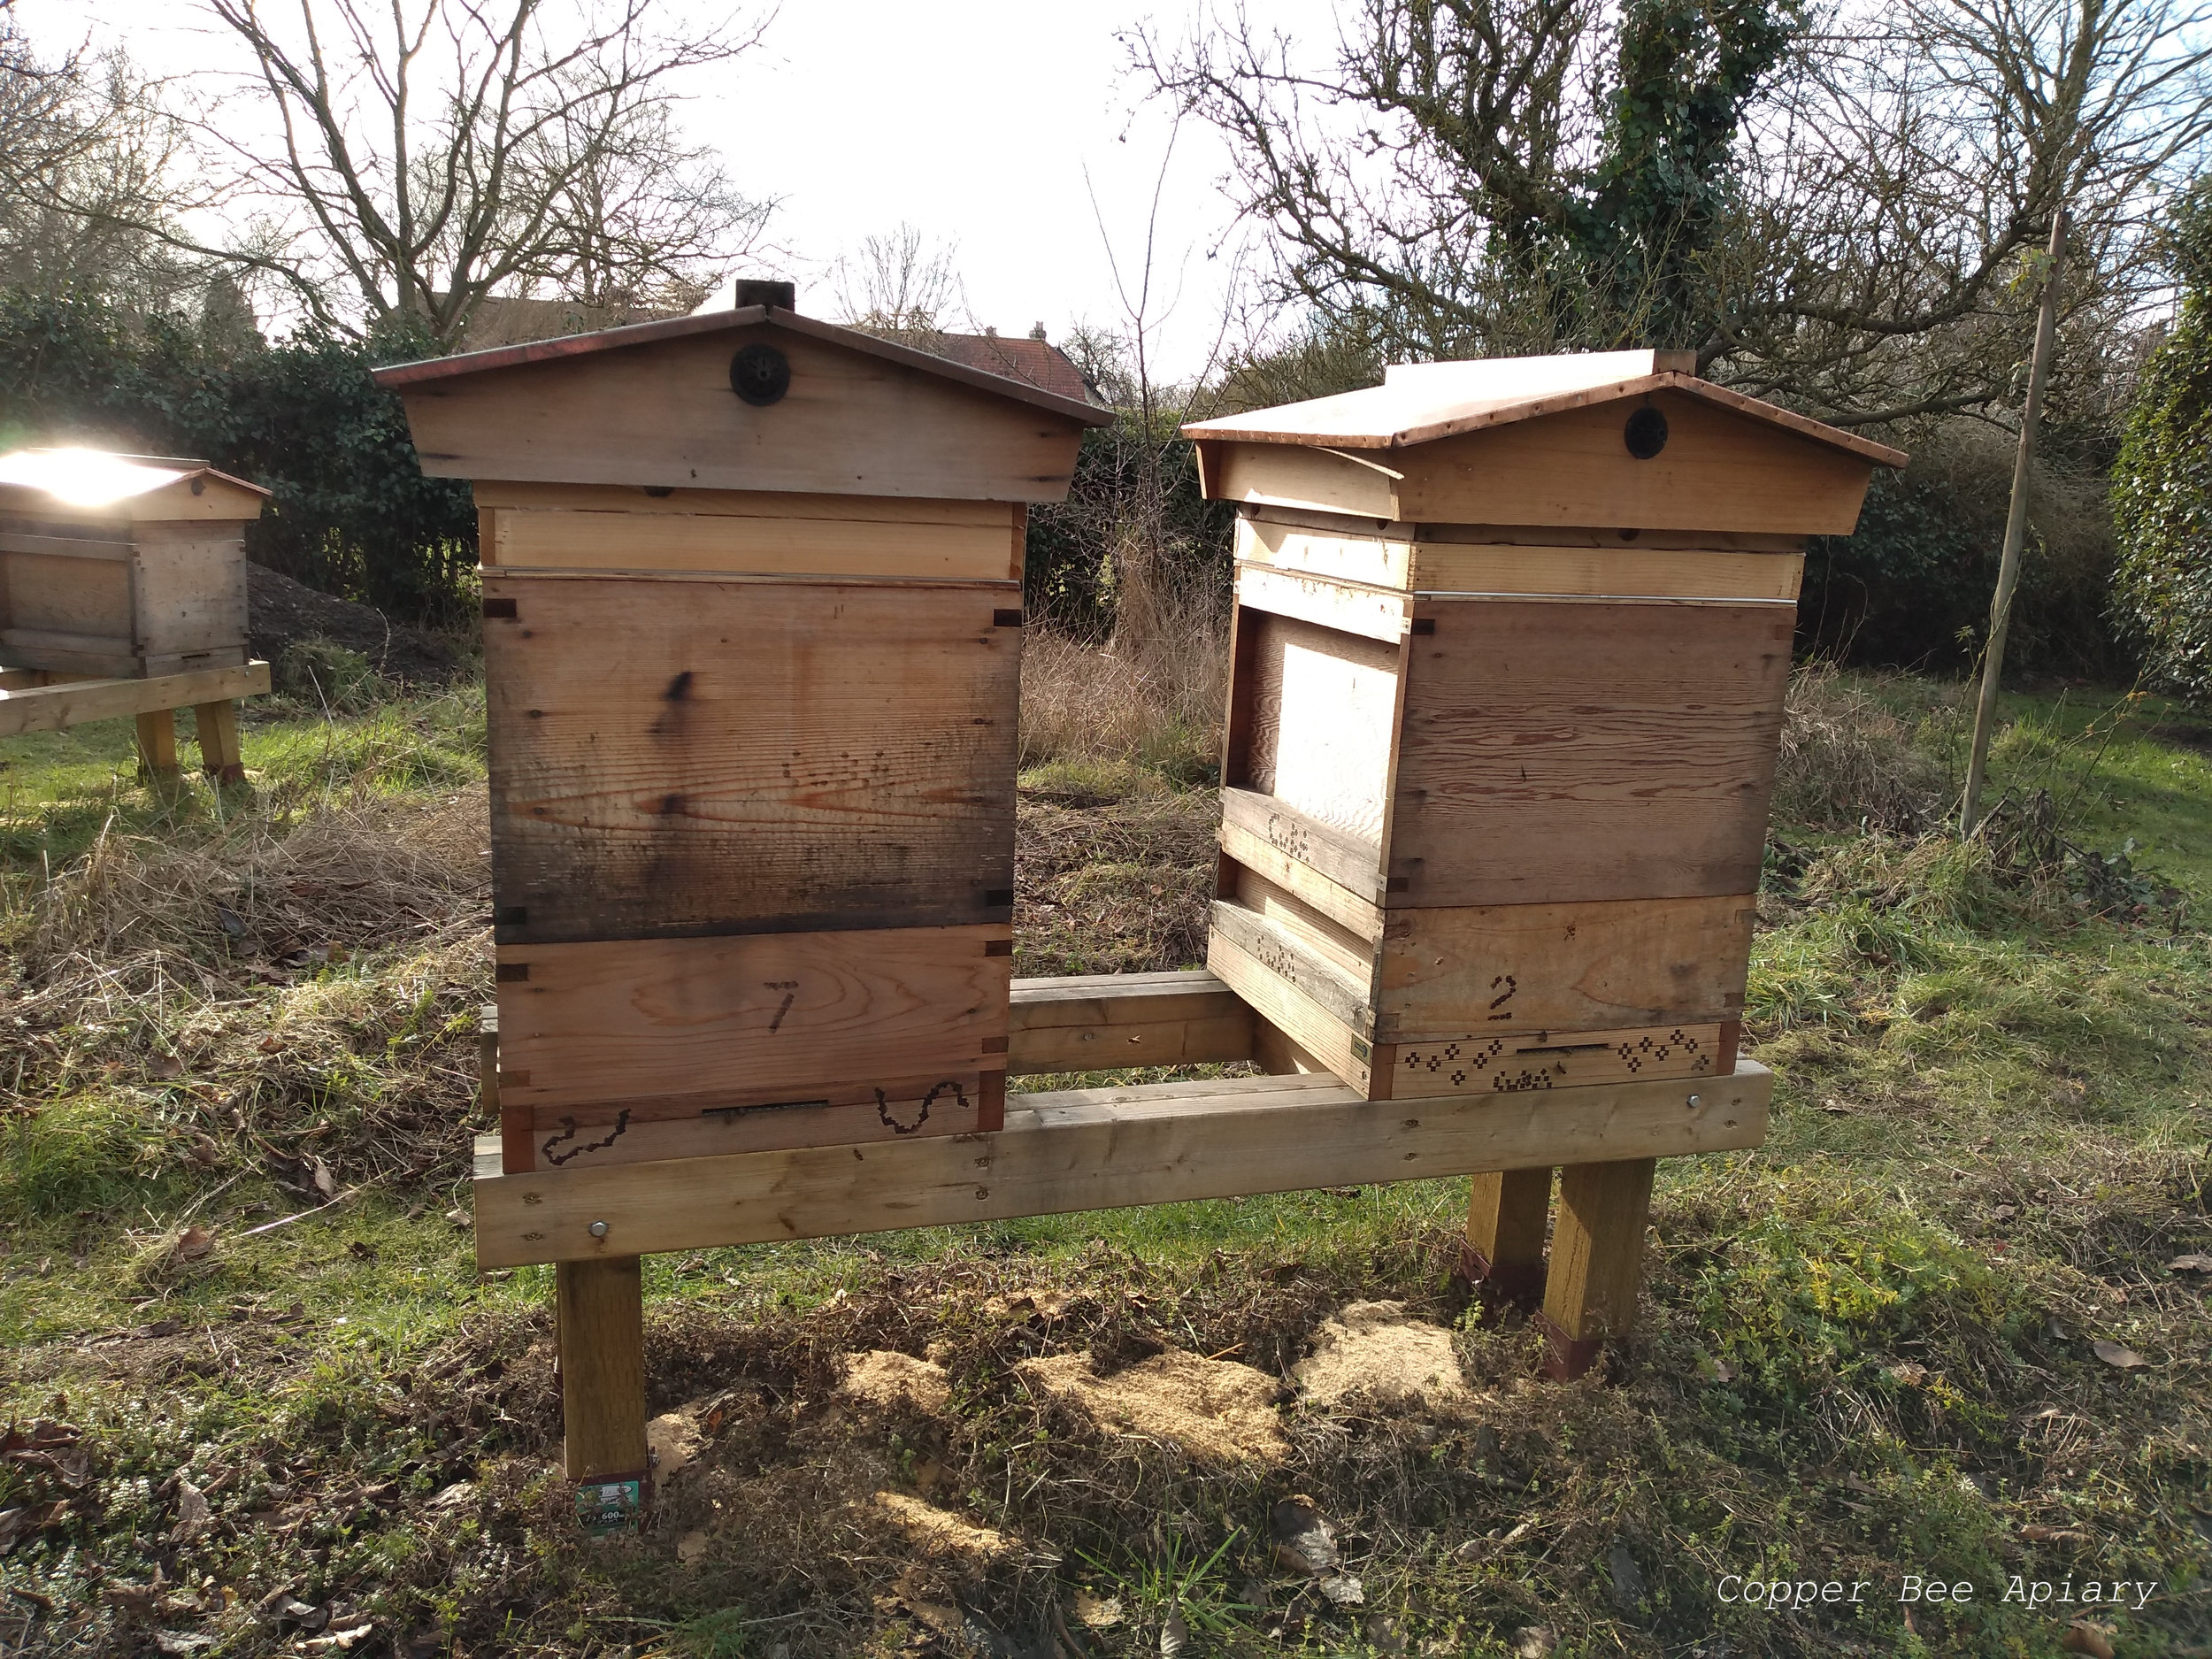 Queen Peony's hive (left) and Queen Ottilie's hive (right), with Queen Mab's hive in the background